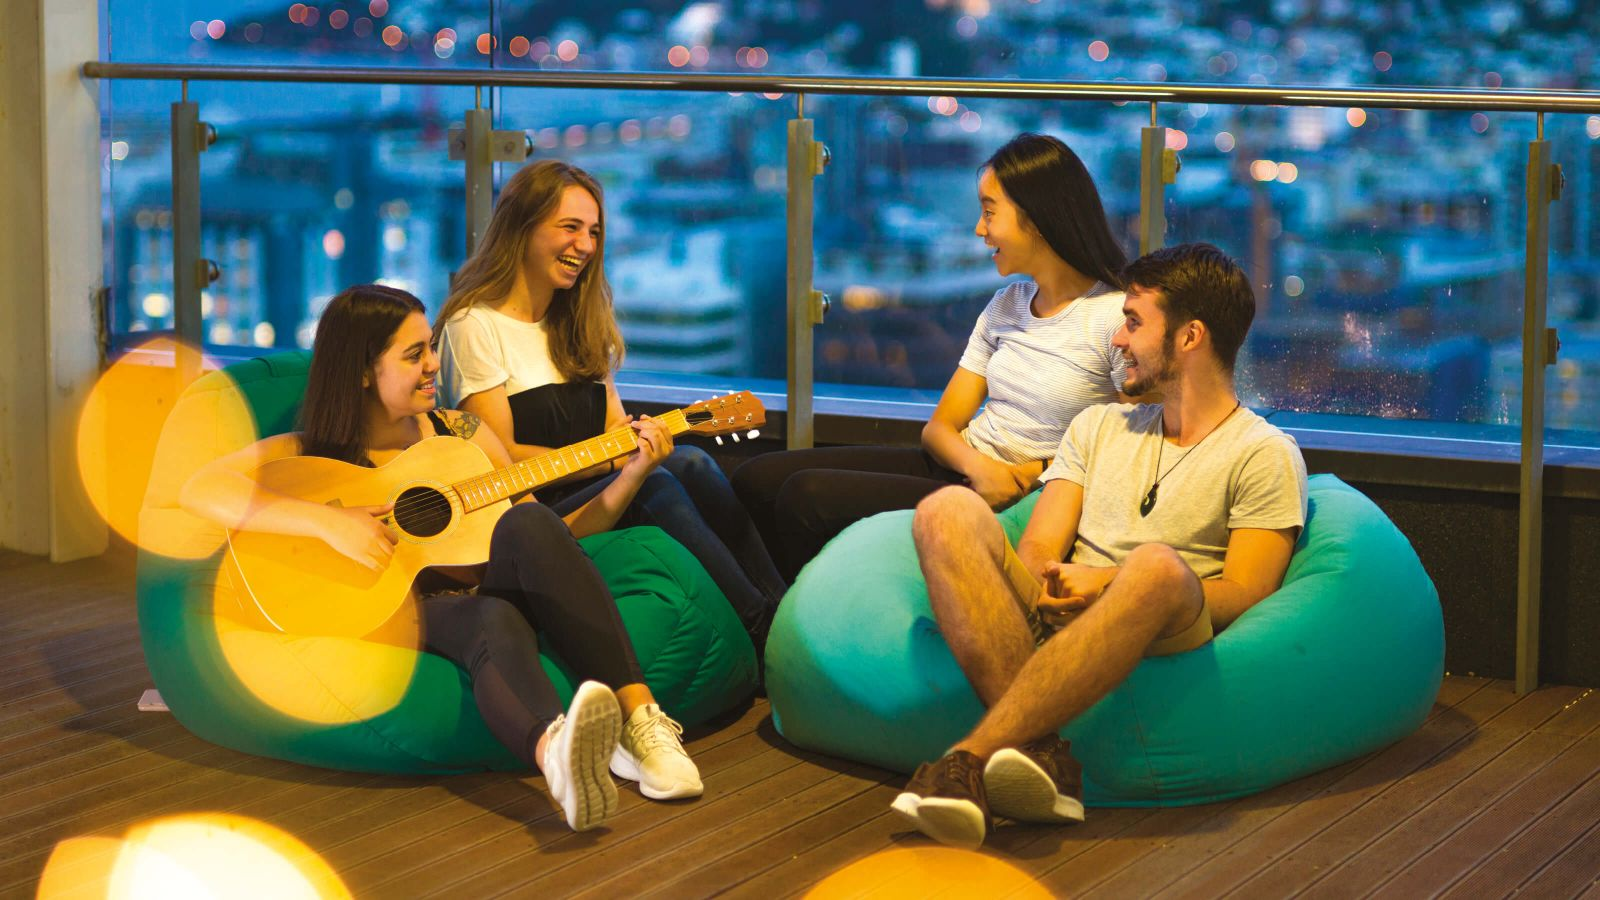 Students relaxing on bean bags on a balcony at one of Victoria University of Wellington's halls of residence.